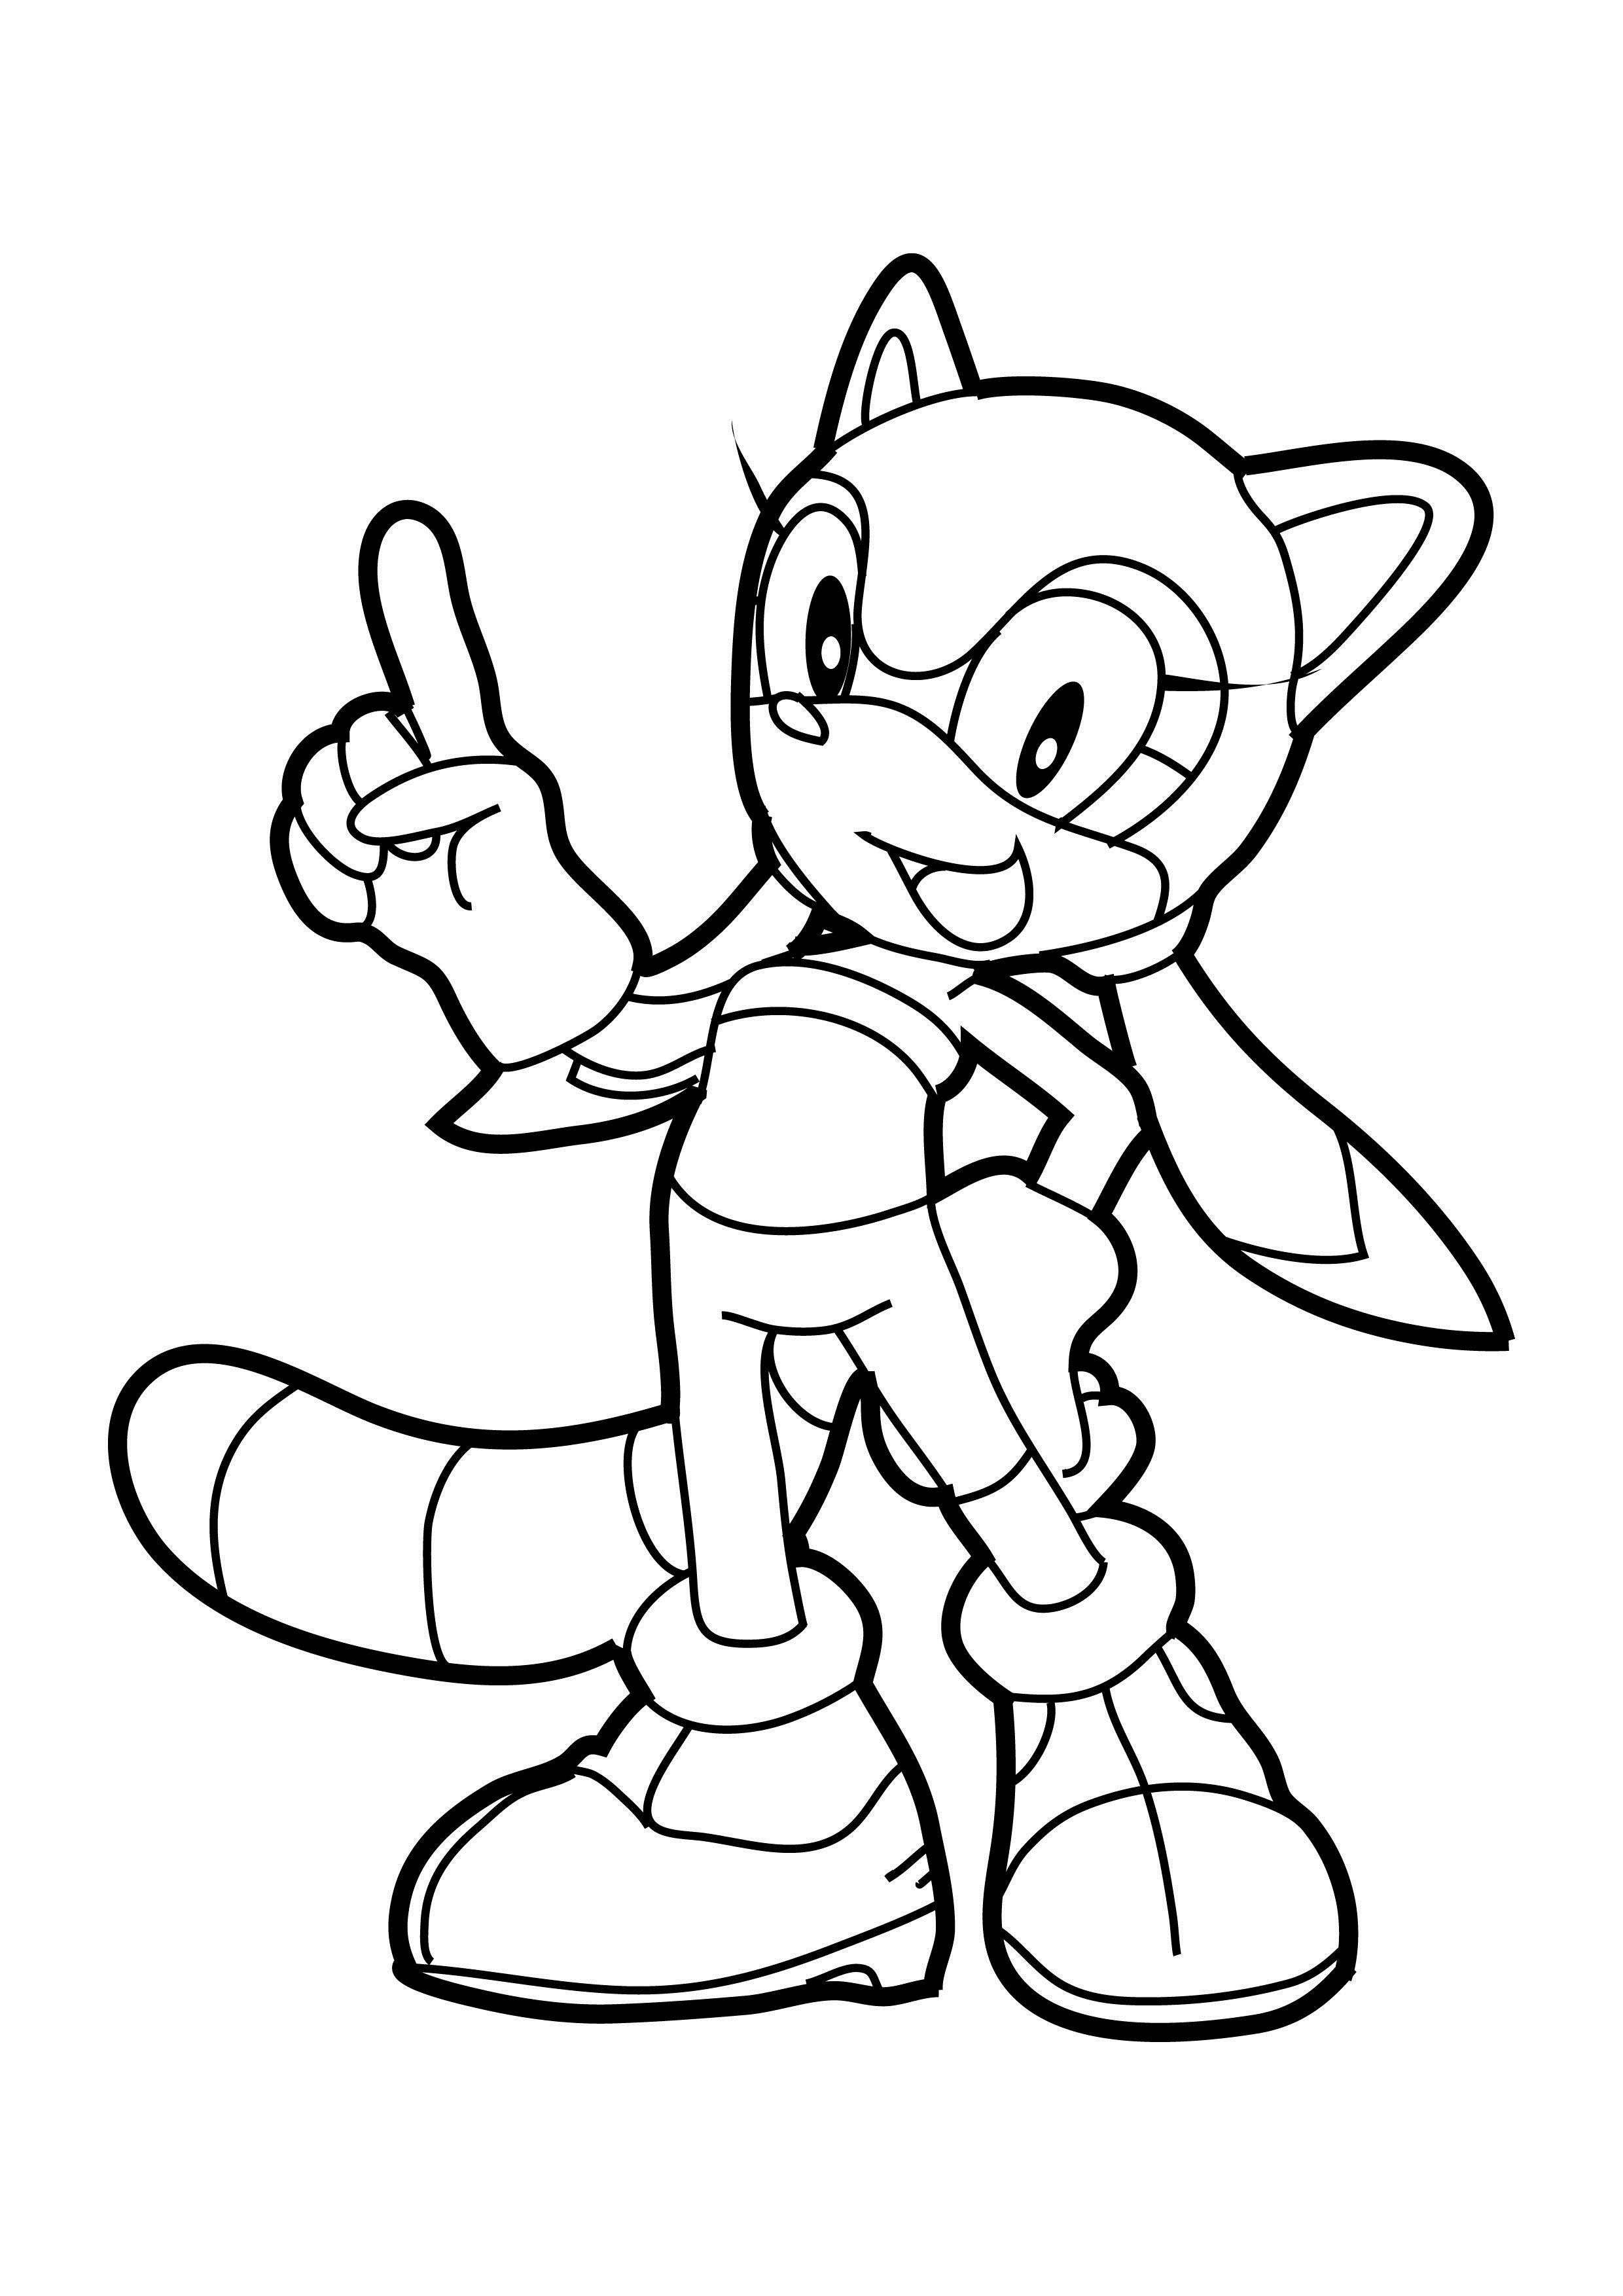 Sonic the hedgehog coloring pages to download and print ...